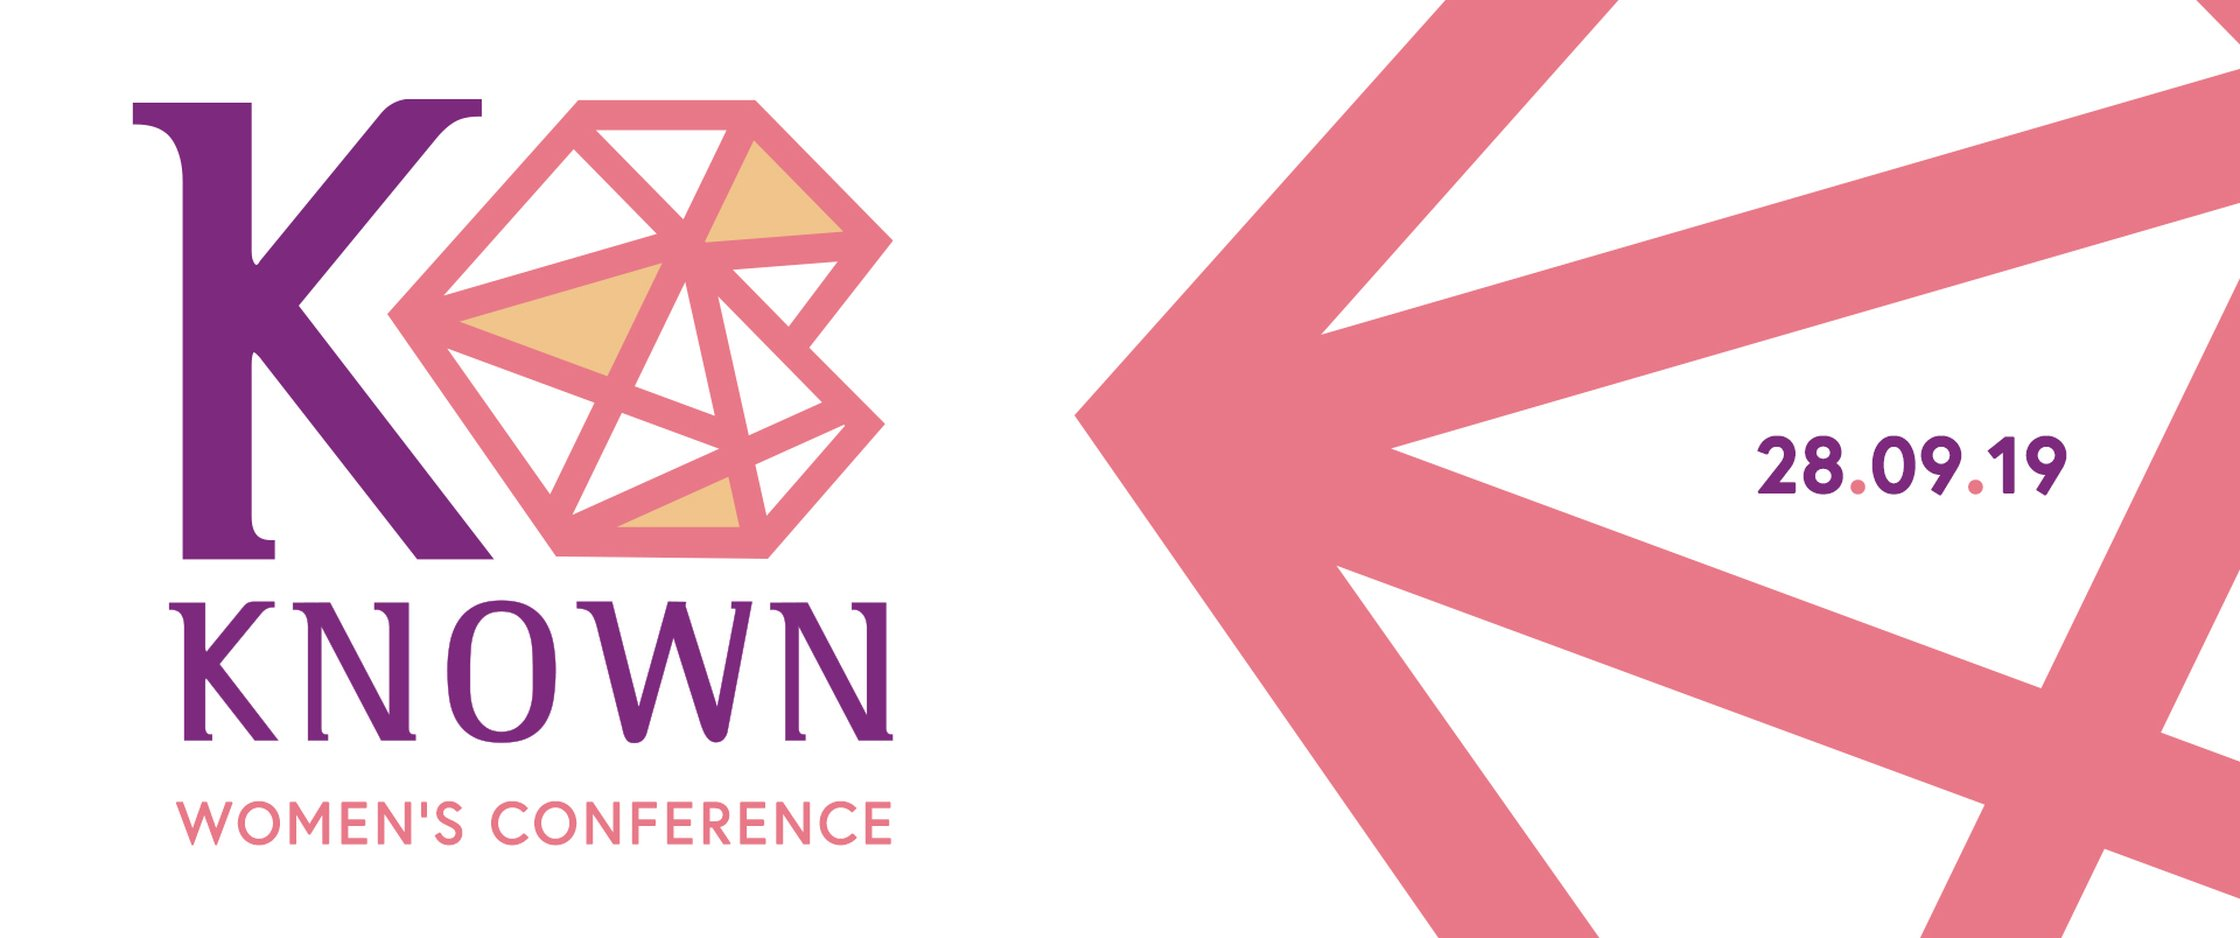 'Known' Women's Conference